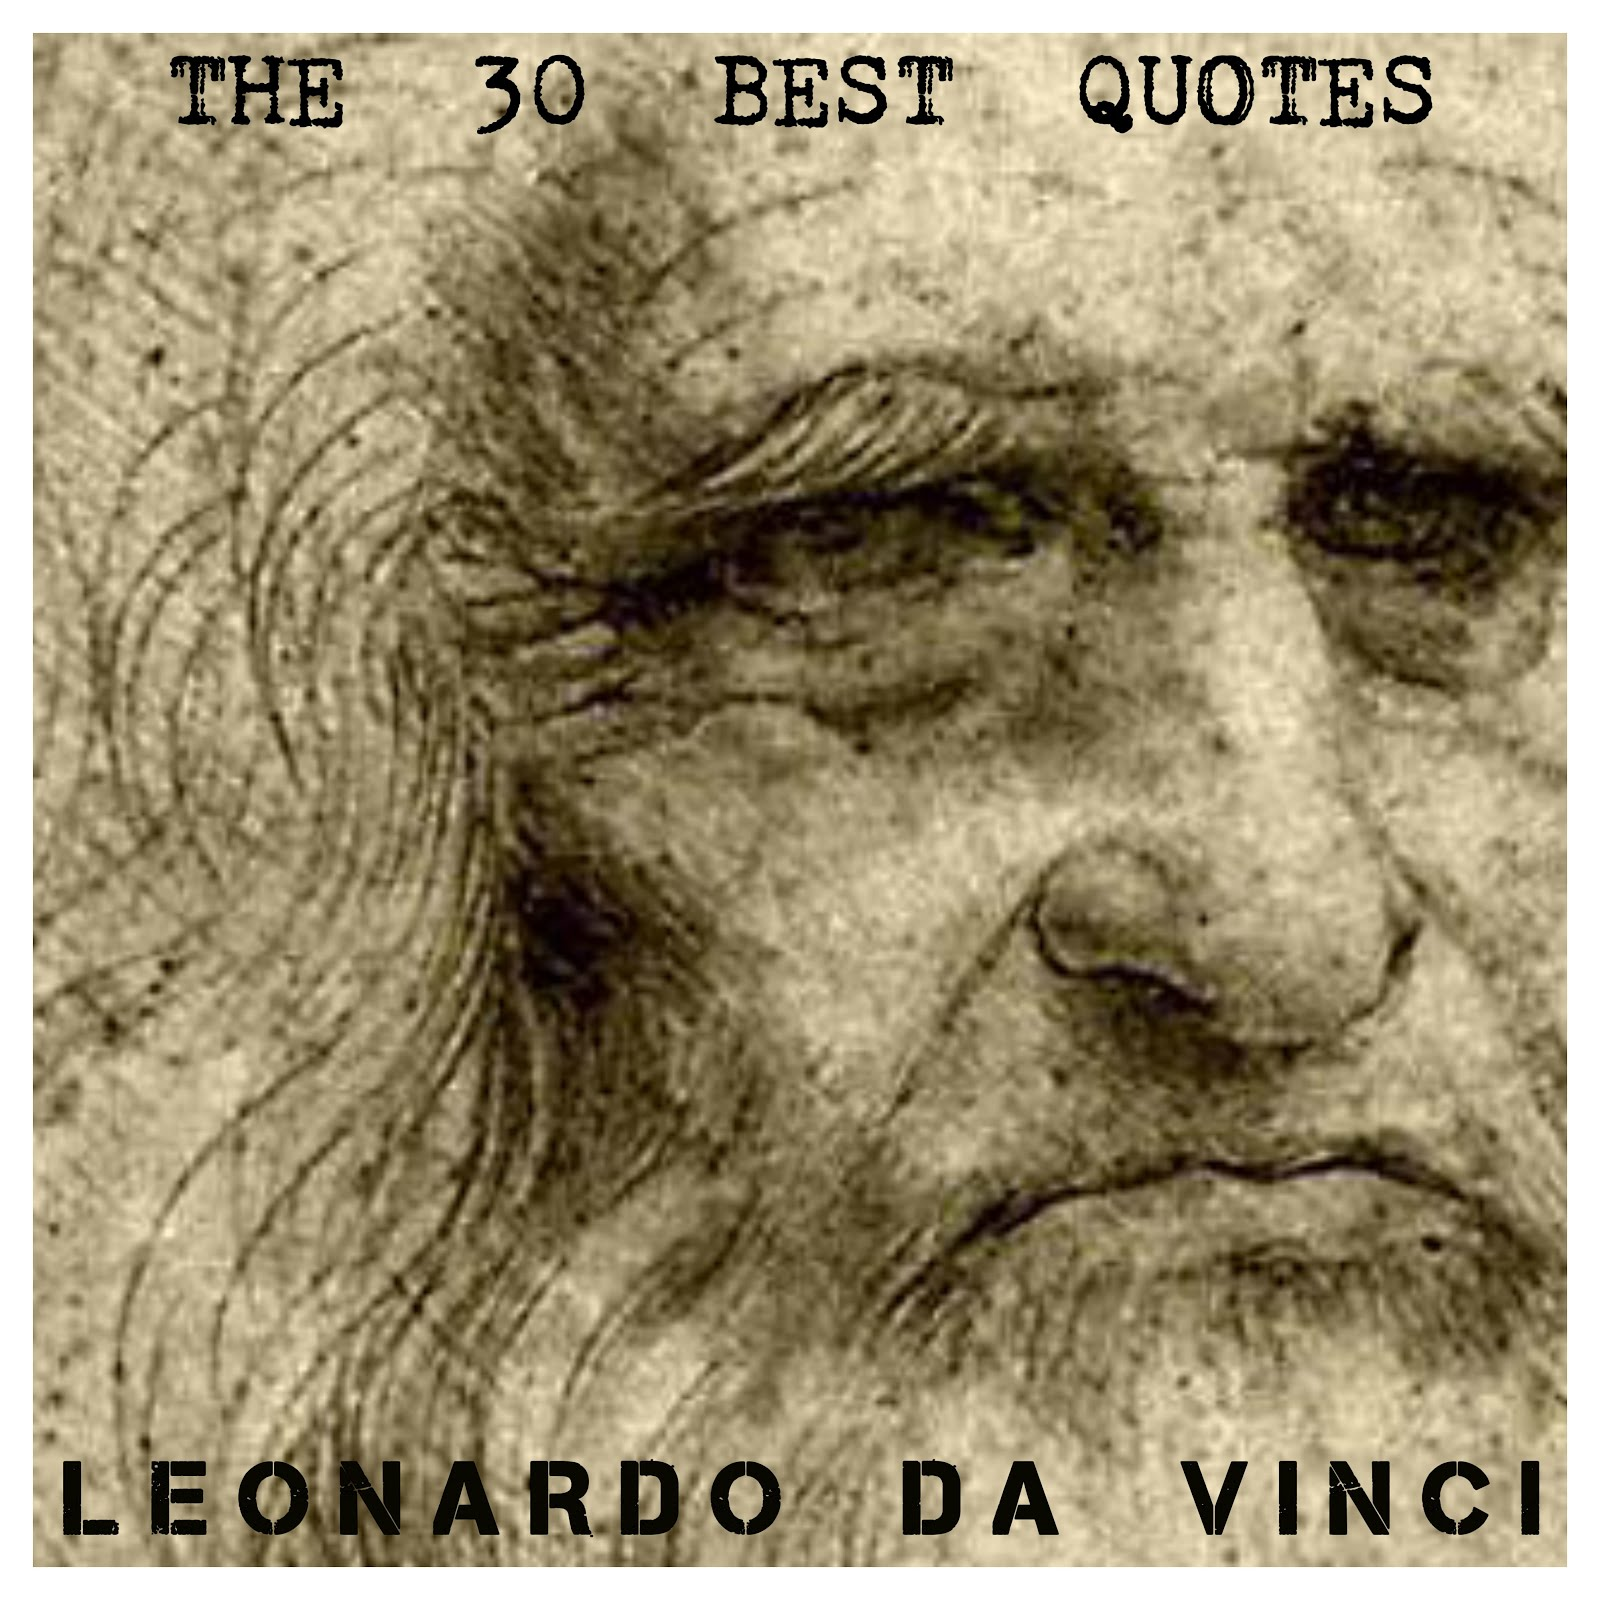 The 30 best quotes Leonardo da Vinci